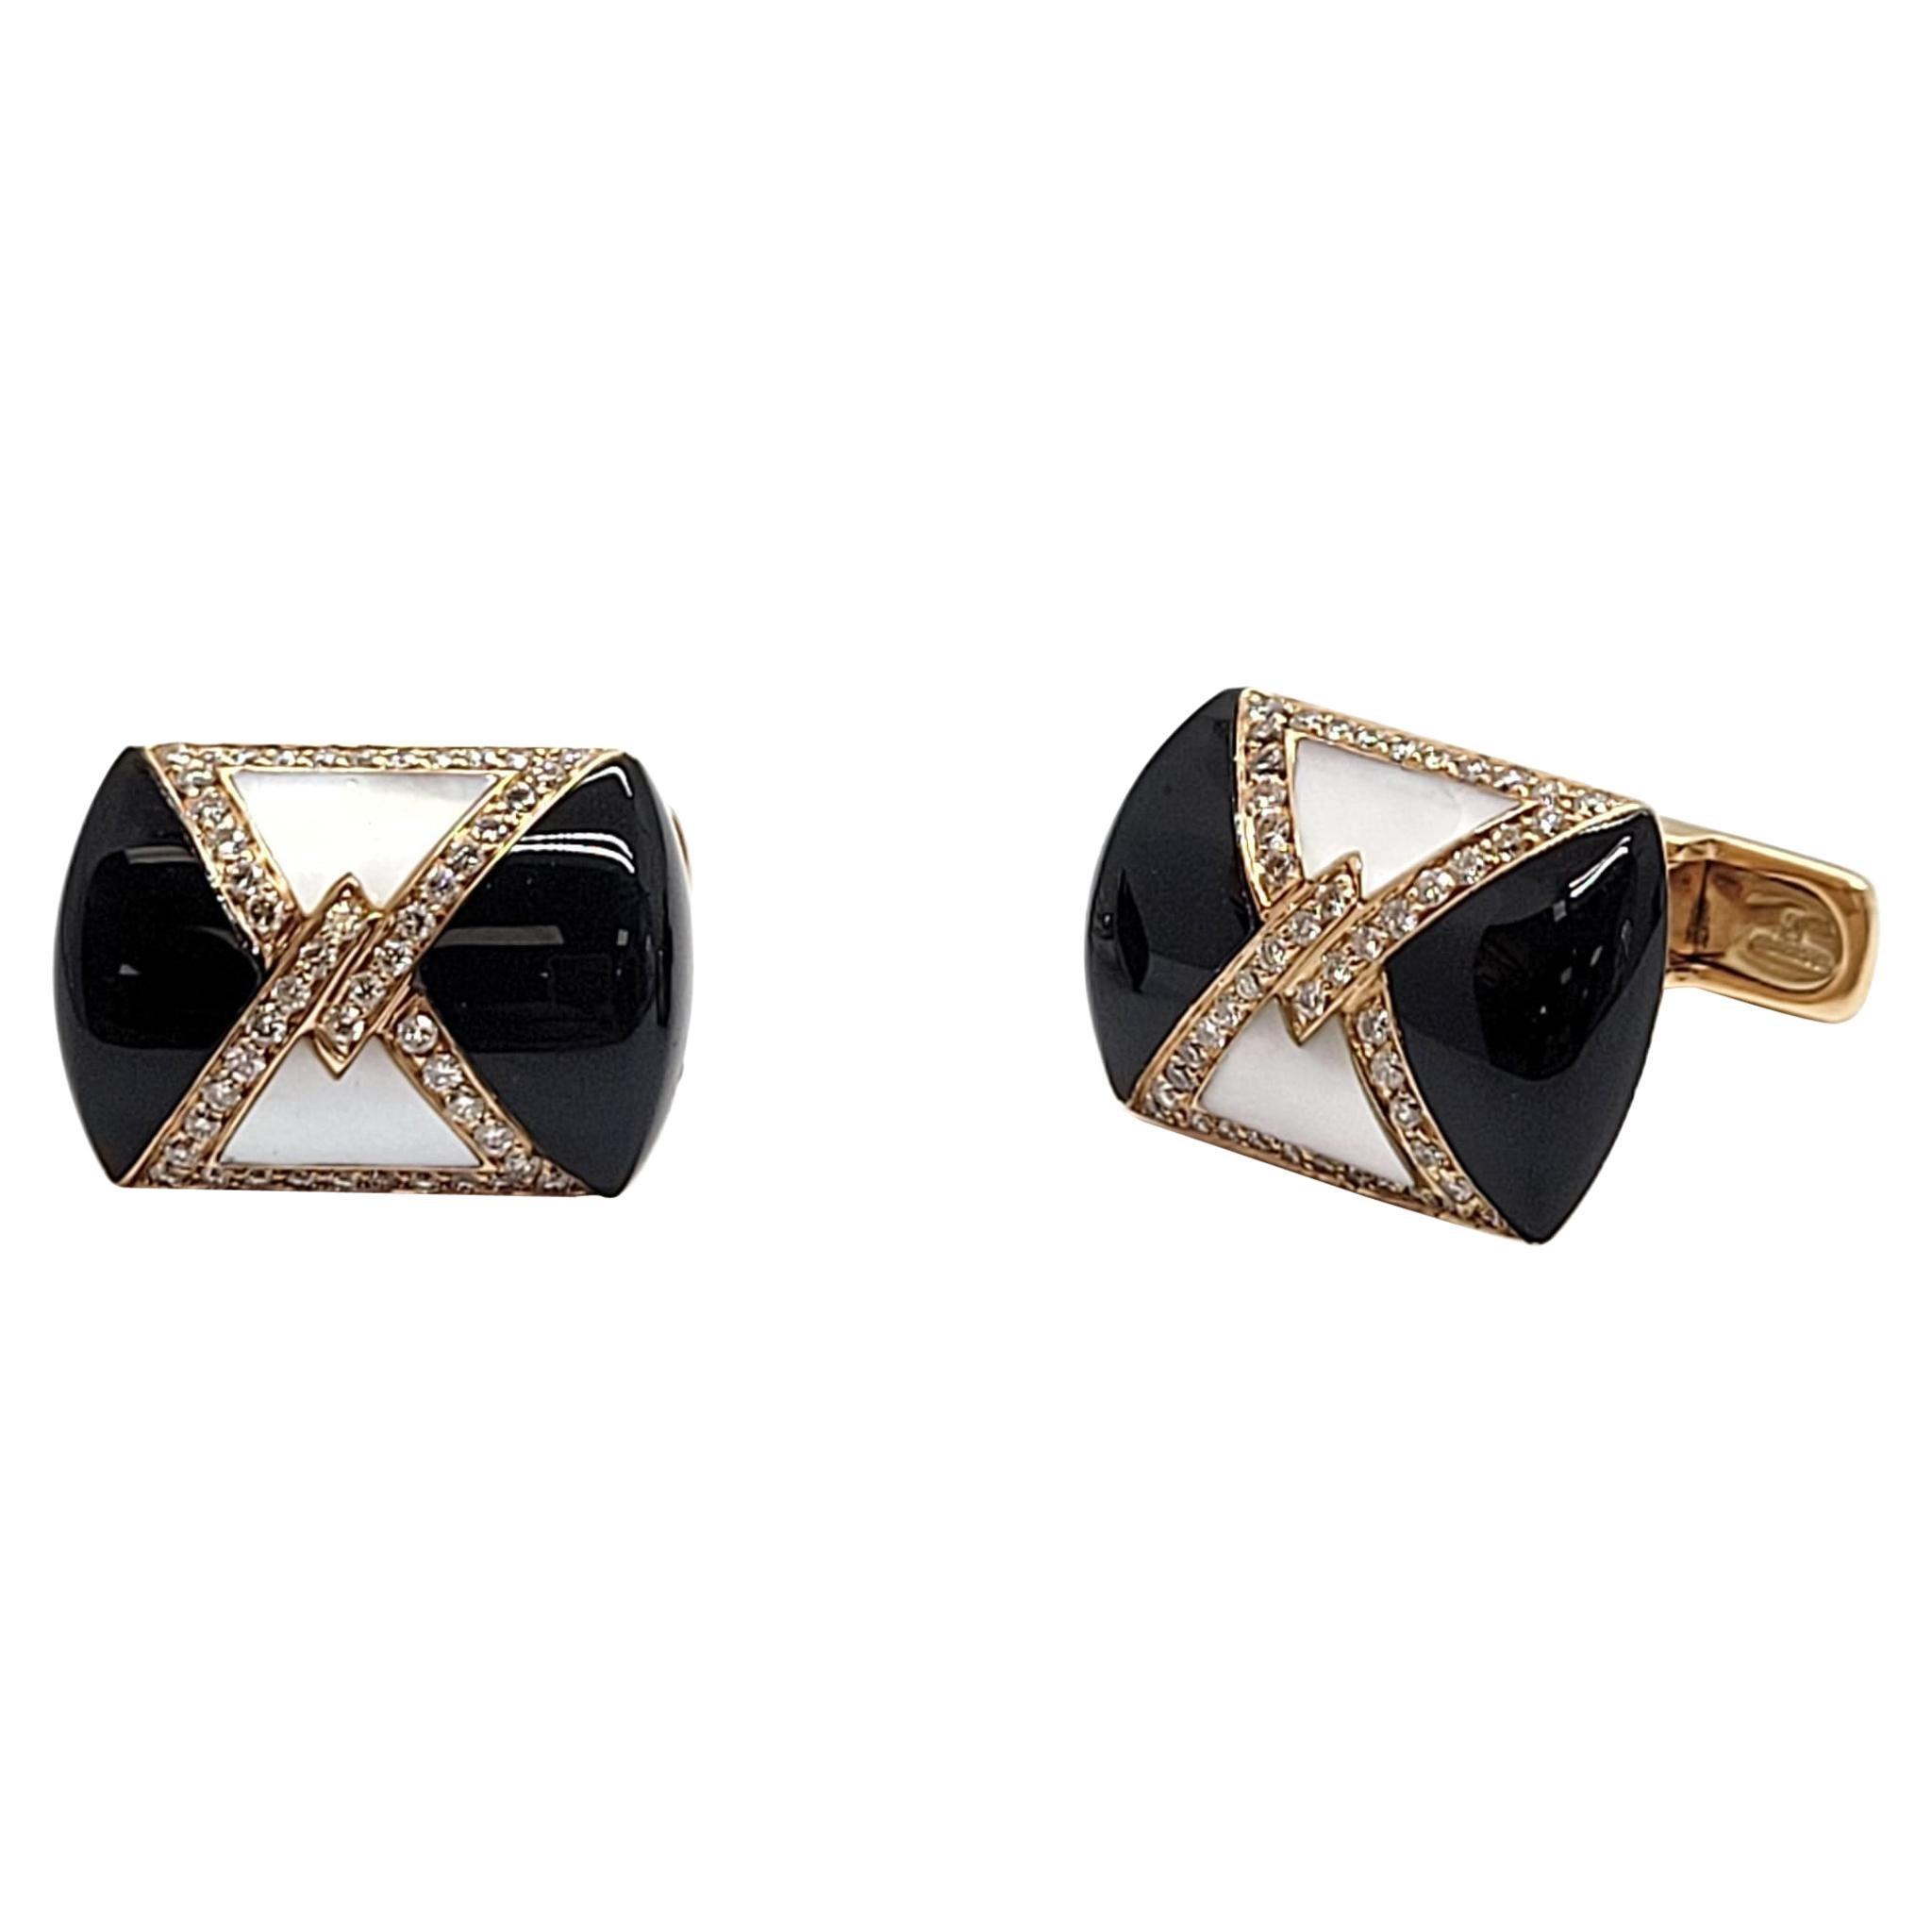 Andreoli Mother of Pearl and Onyx Cufflinks 18k Rose Gold